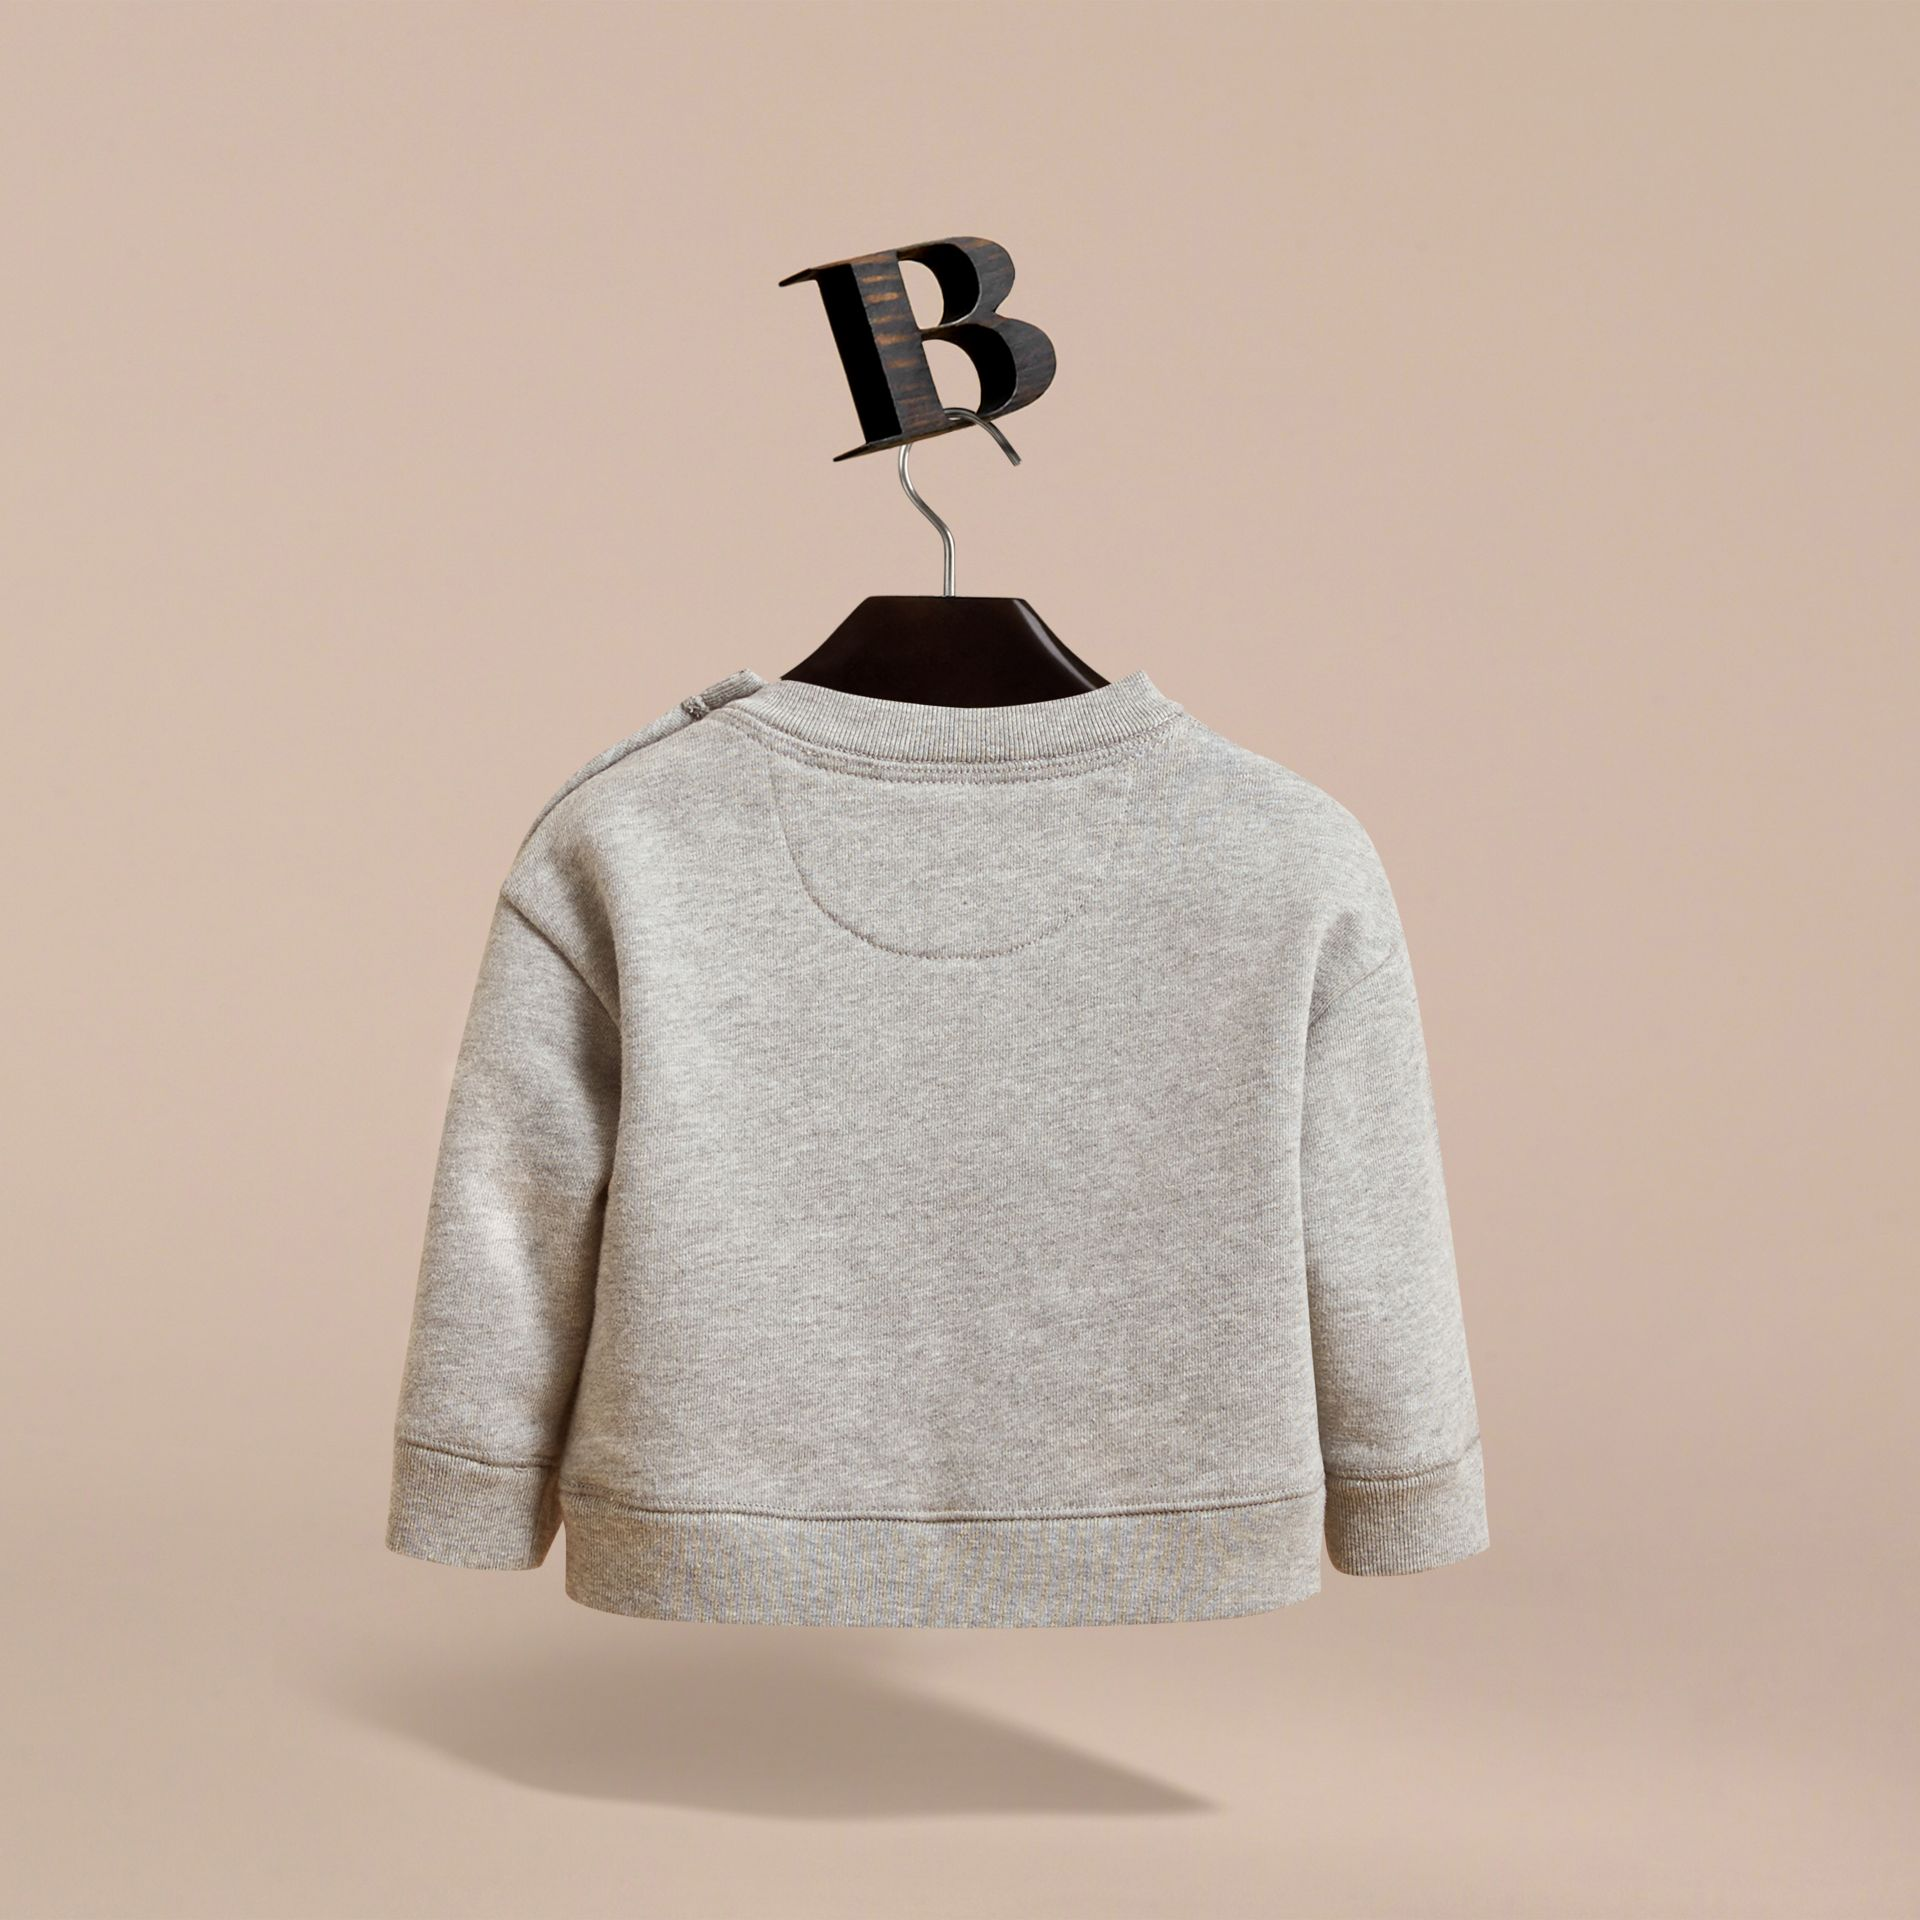 Birds of a Feather Motif Cotton Sweatshirt in Grey Melange | Burberry Canada - gallery image 4